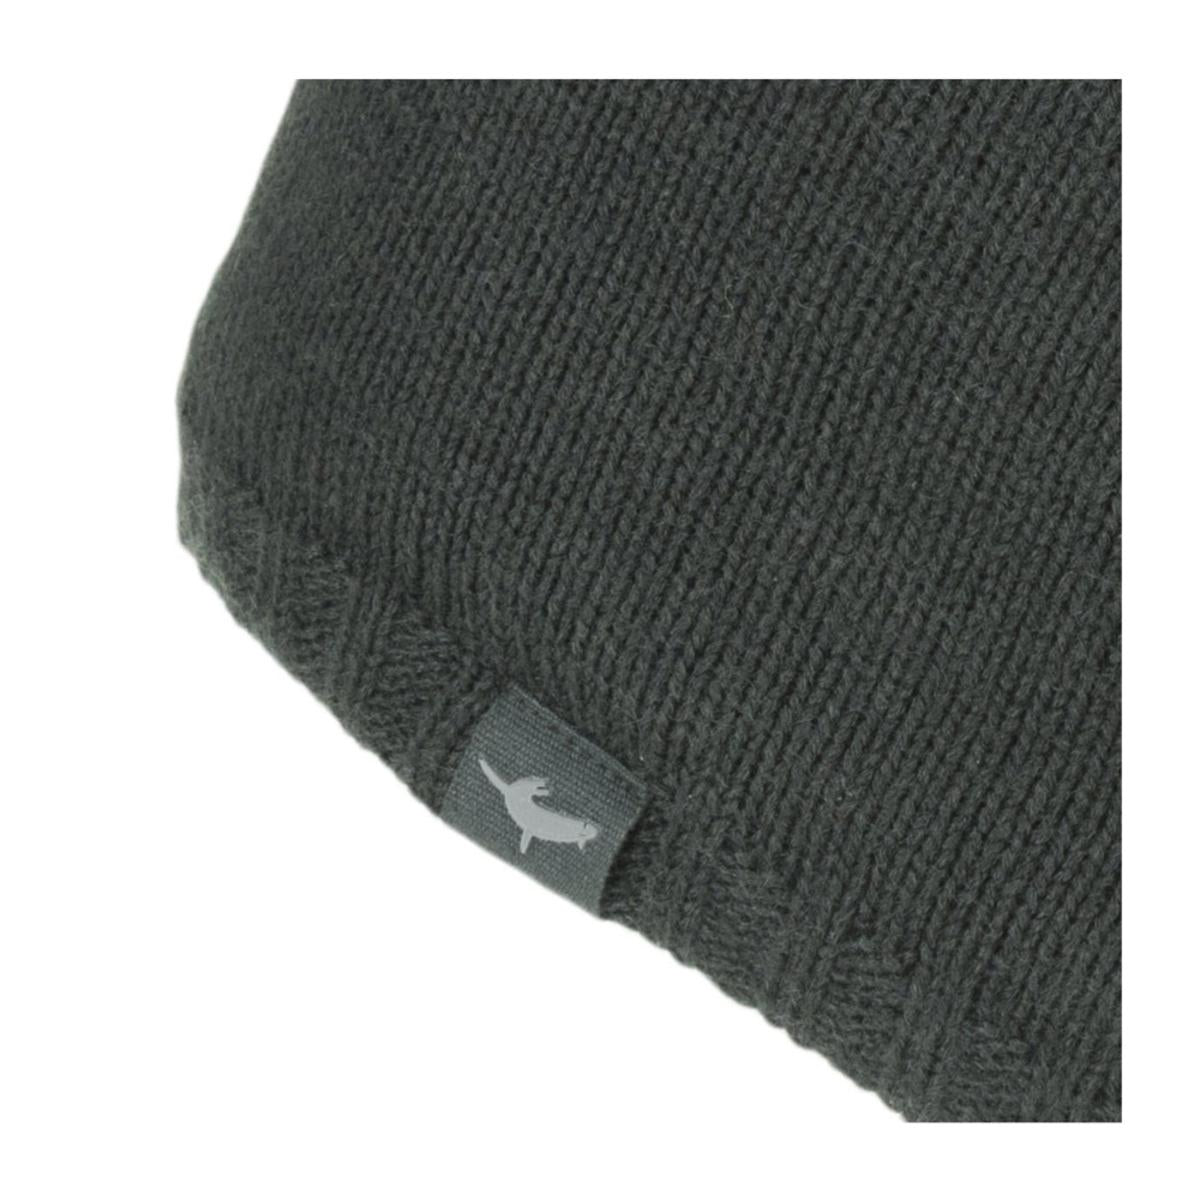 SealSkinz Men's Waterproof Cold Weather Beanie Hat